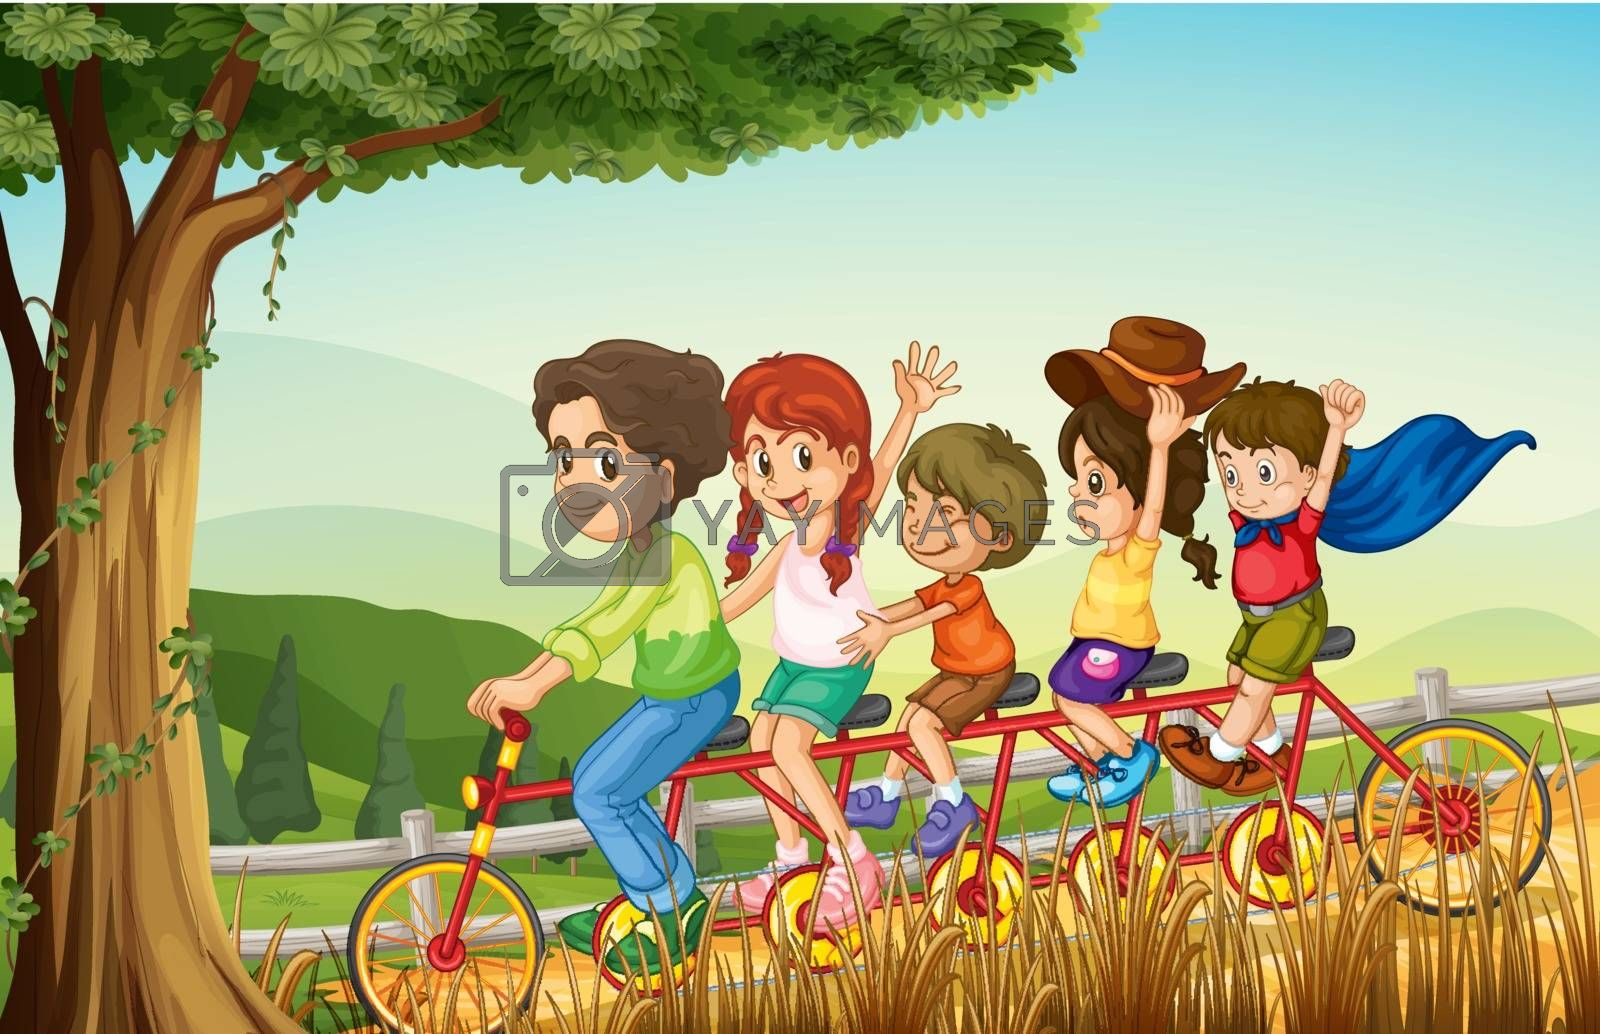 Illustration of a group of people biking